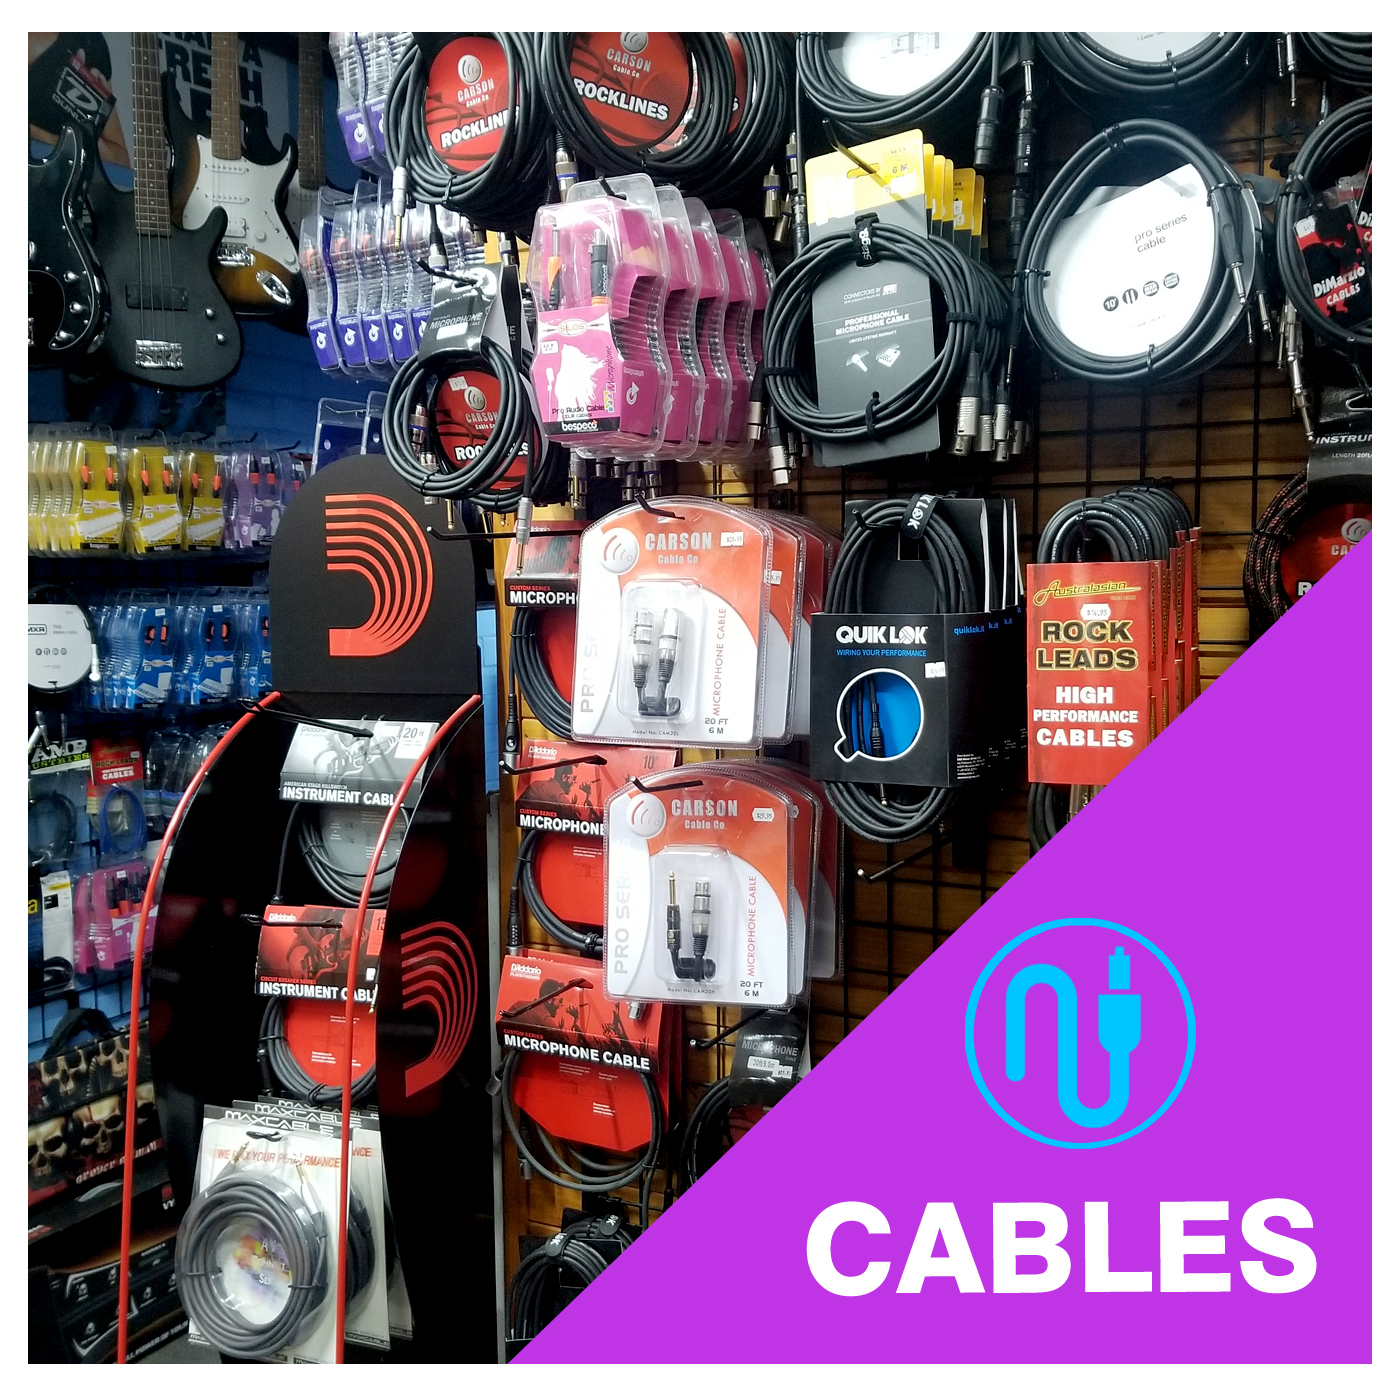 cables-square.jpg